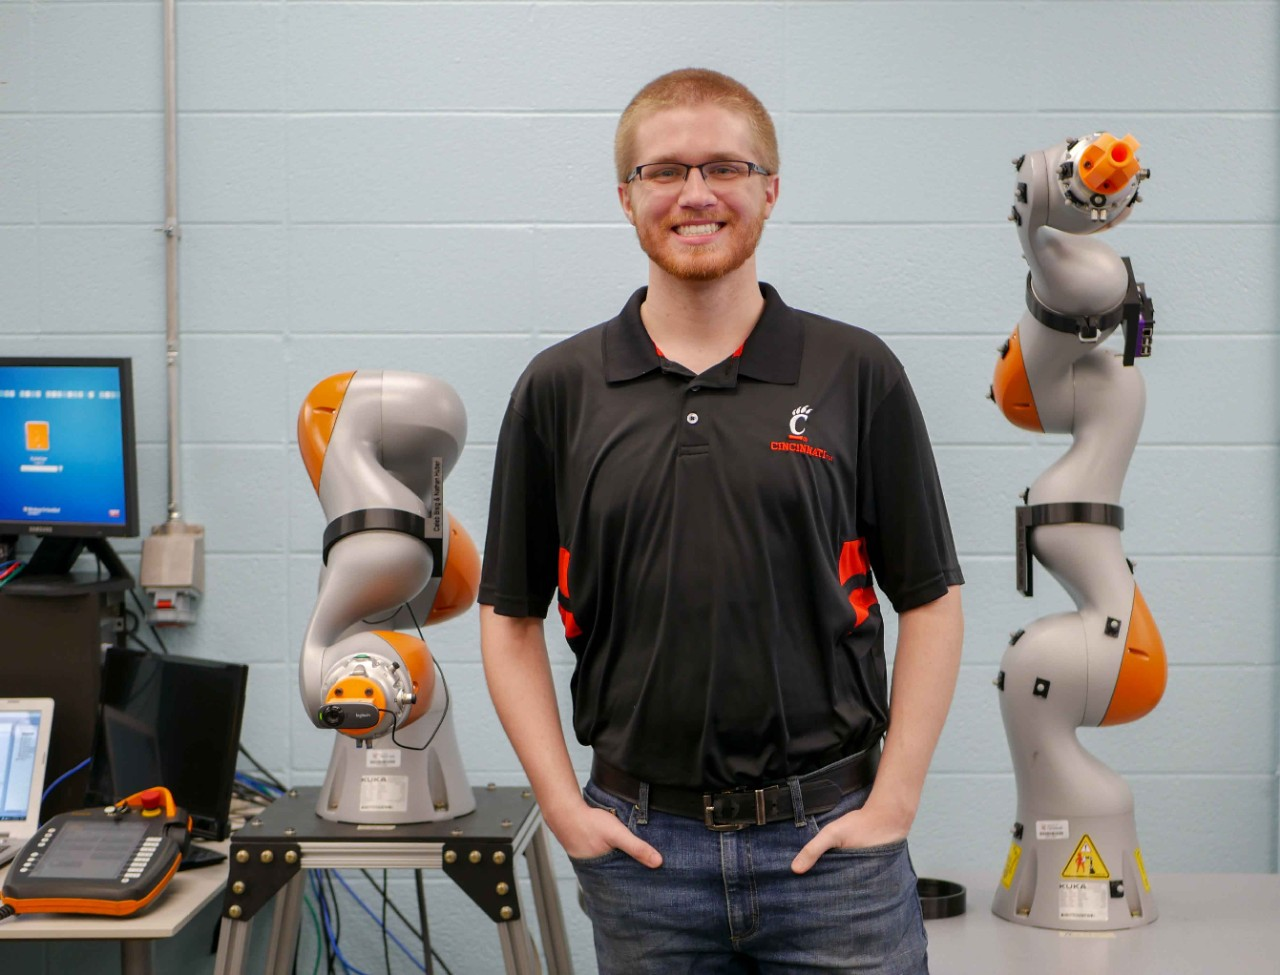 Huber stands in front of robots